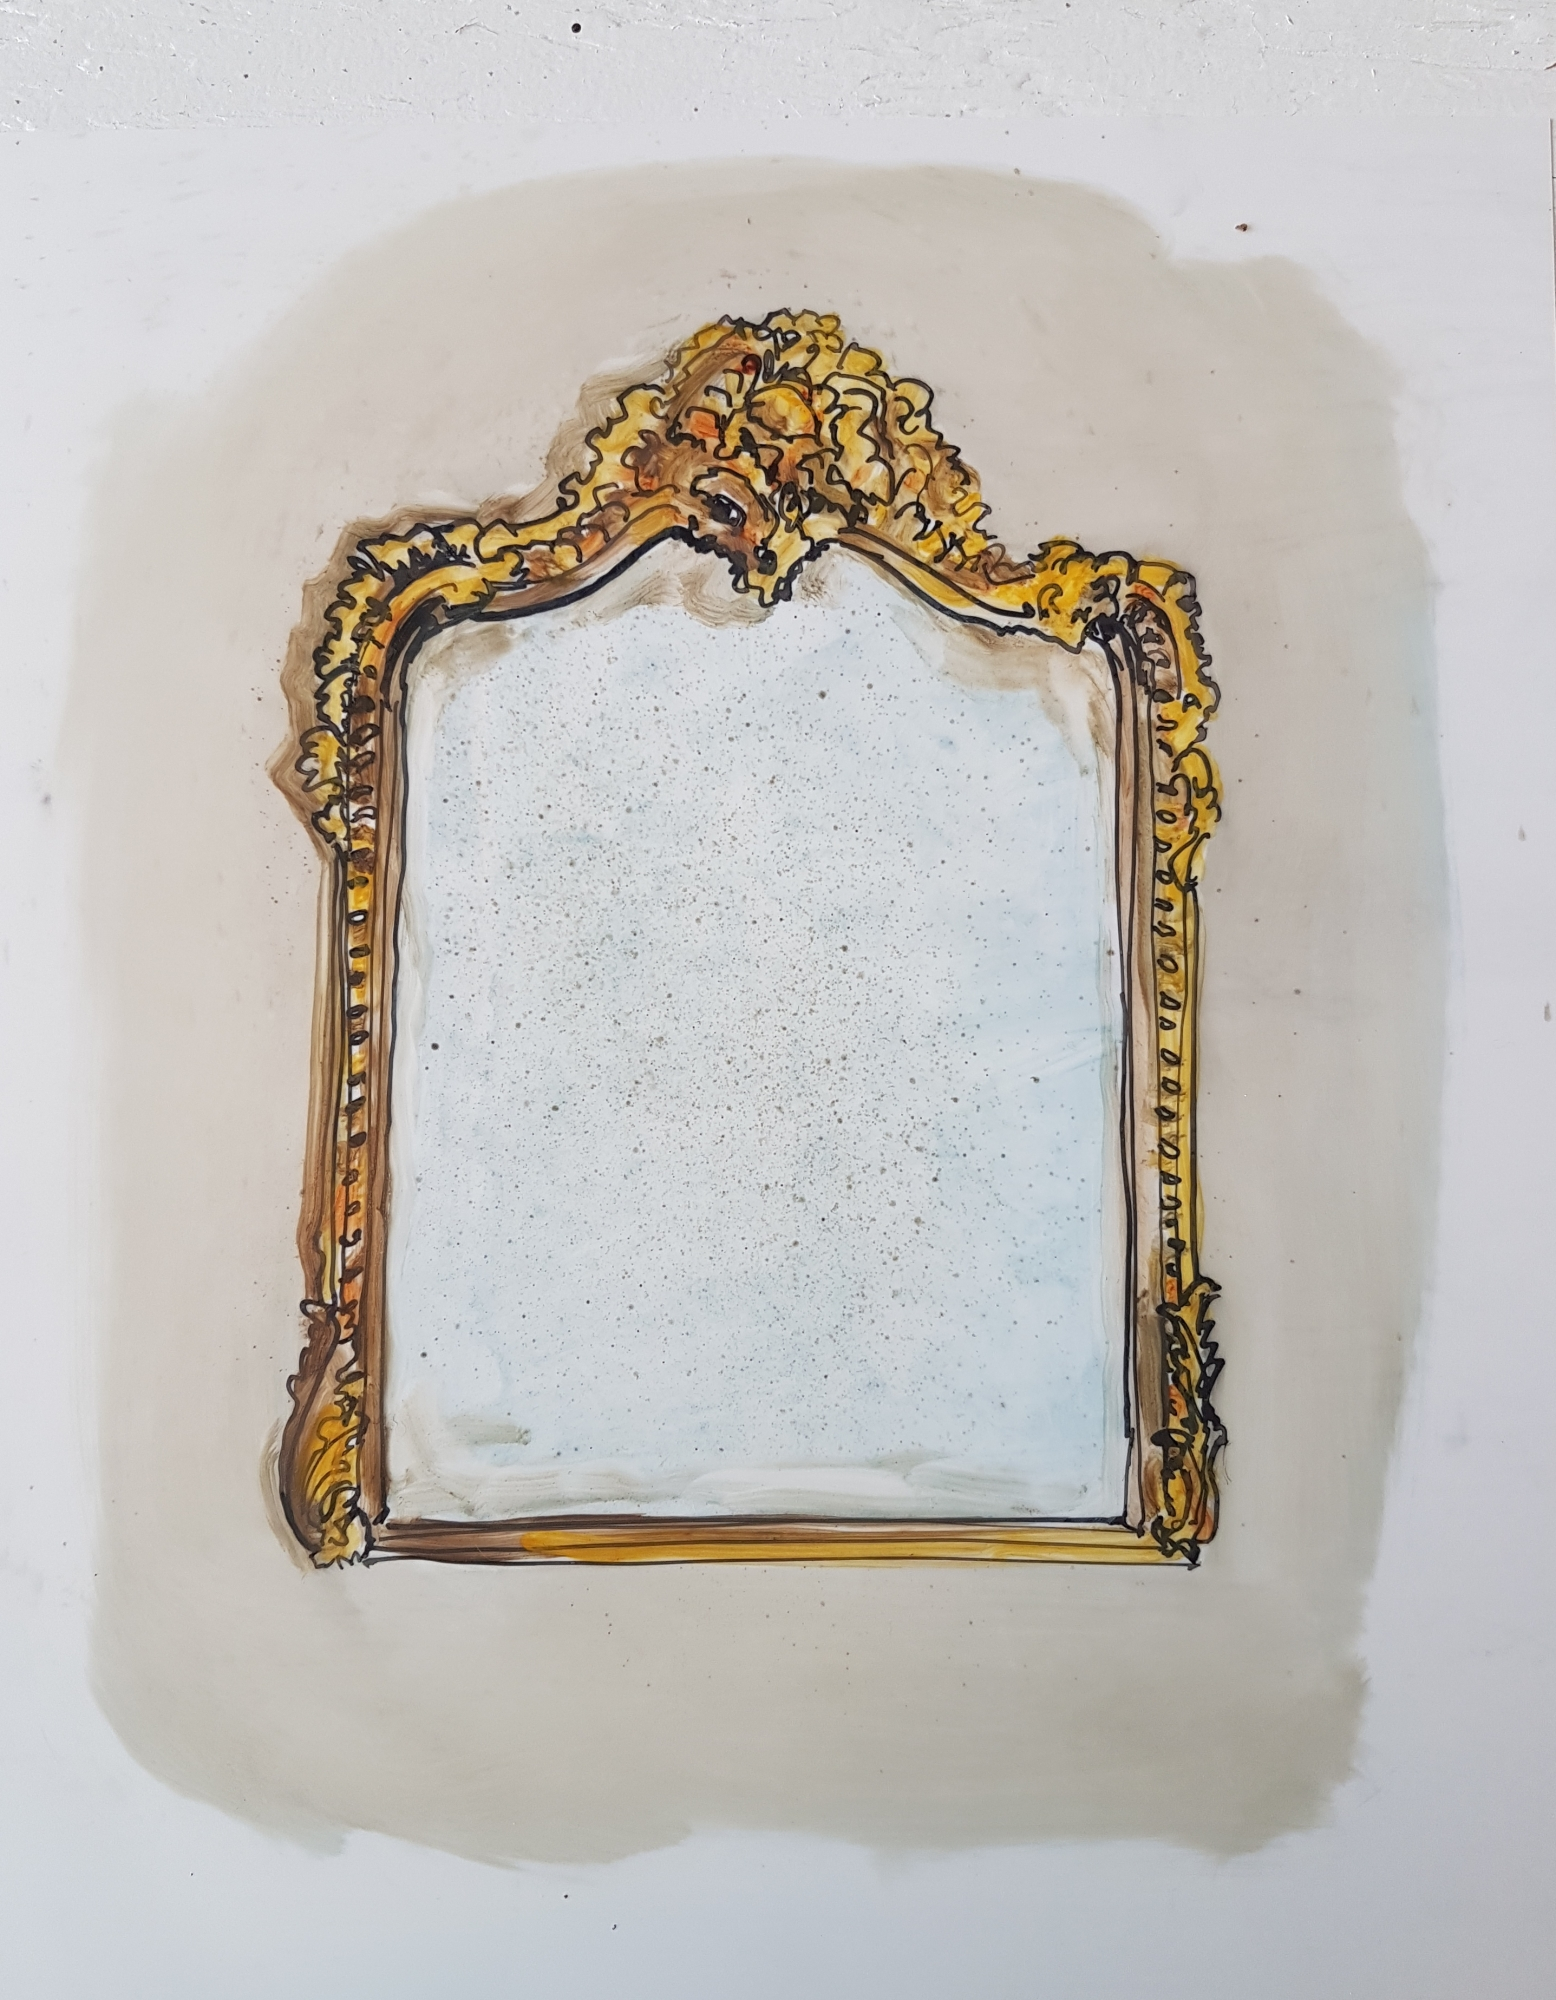 Antique Mirror 2 by Jennifer Wardle